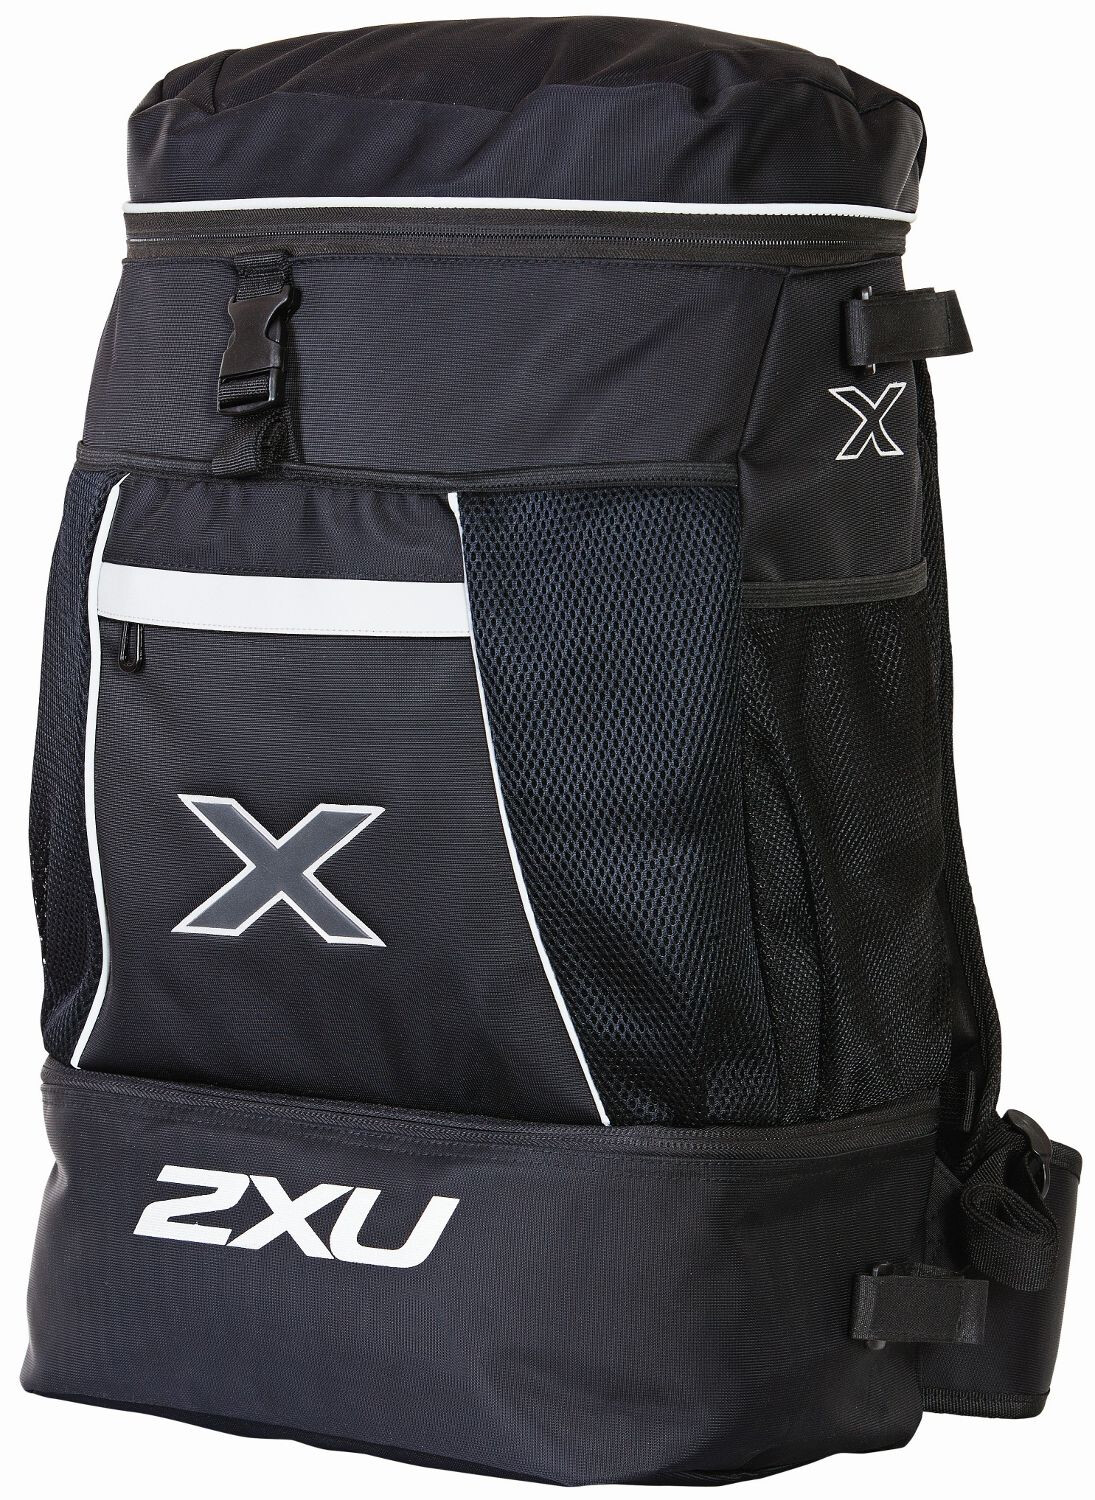 2XU Transition Bag | bikester se